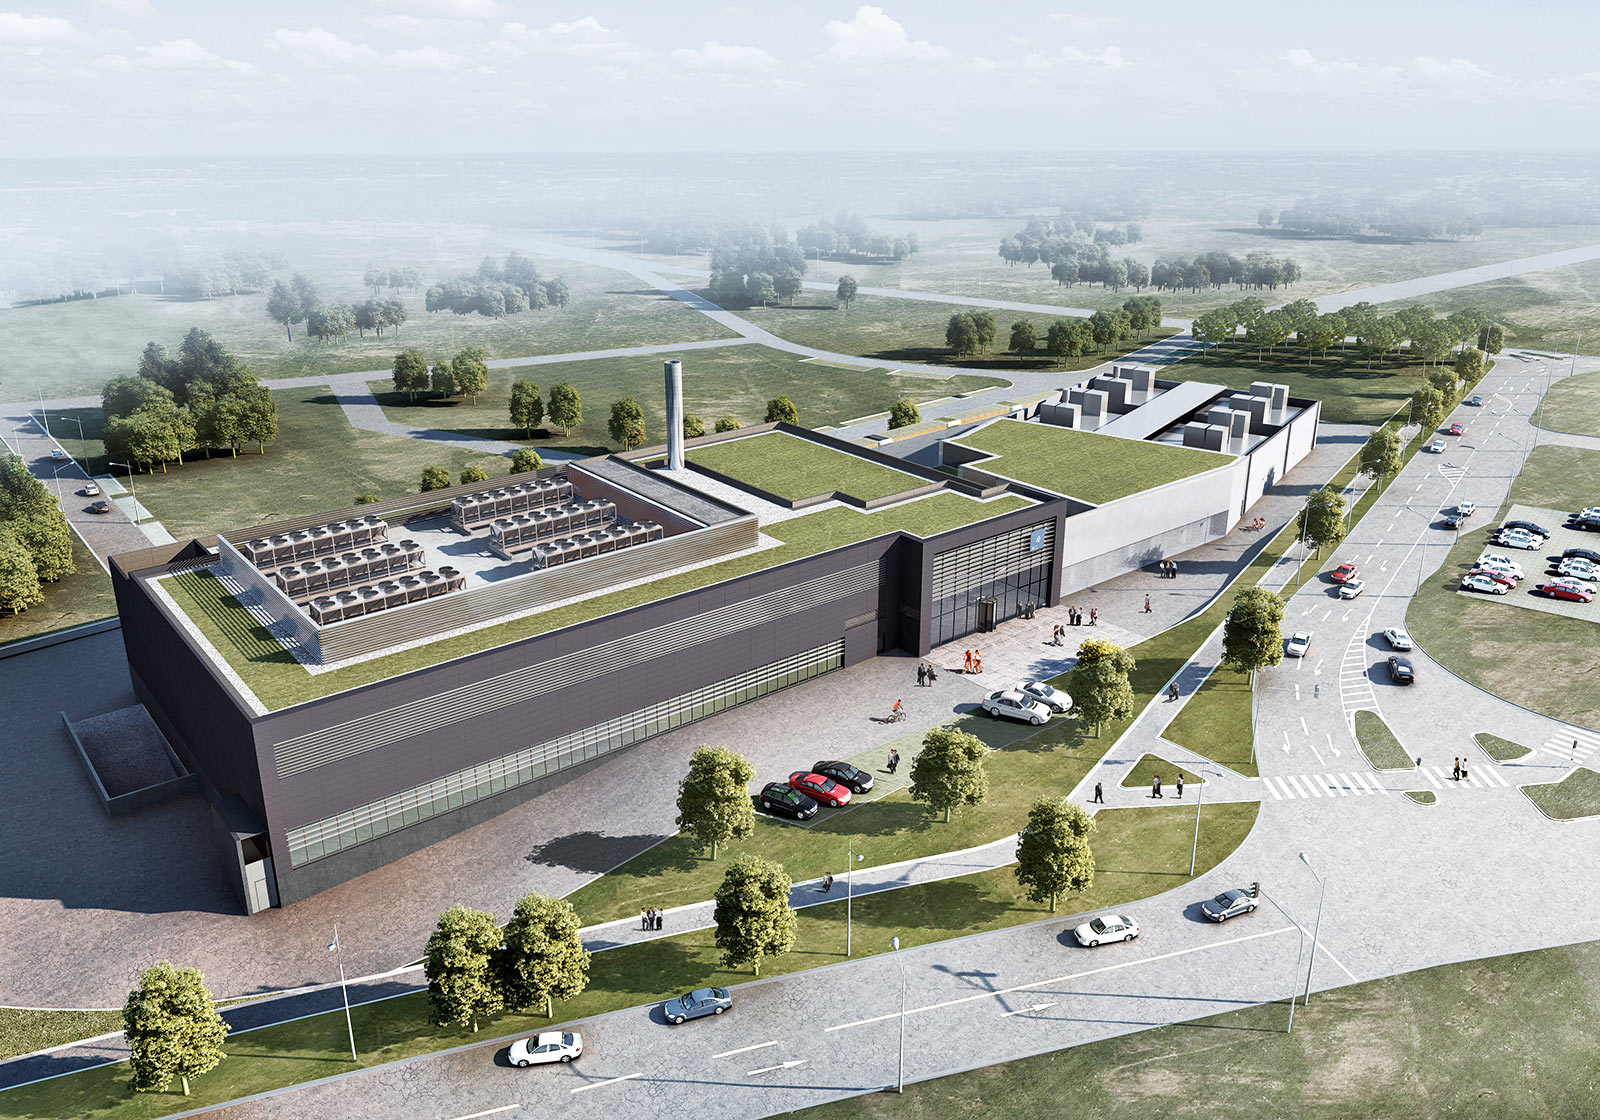 Das neue AVL Tech Center in Bietigheim-Bissingen. Visualisierung: ATP